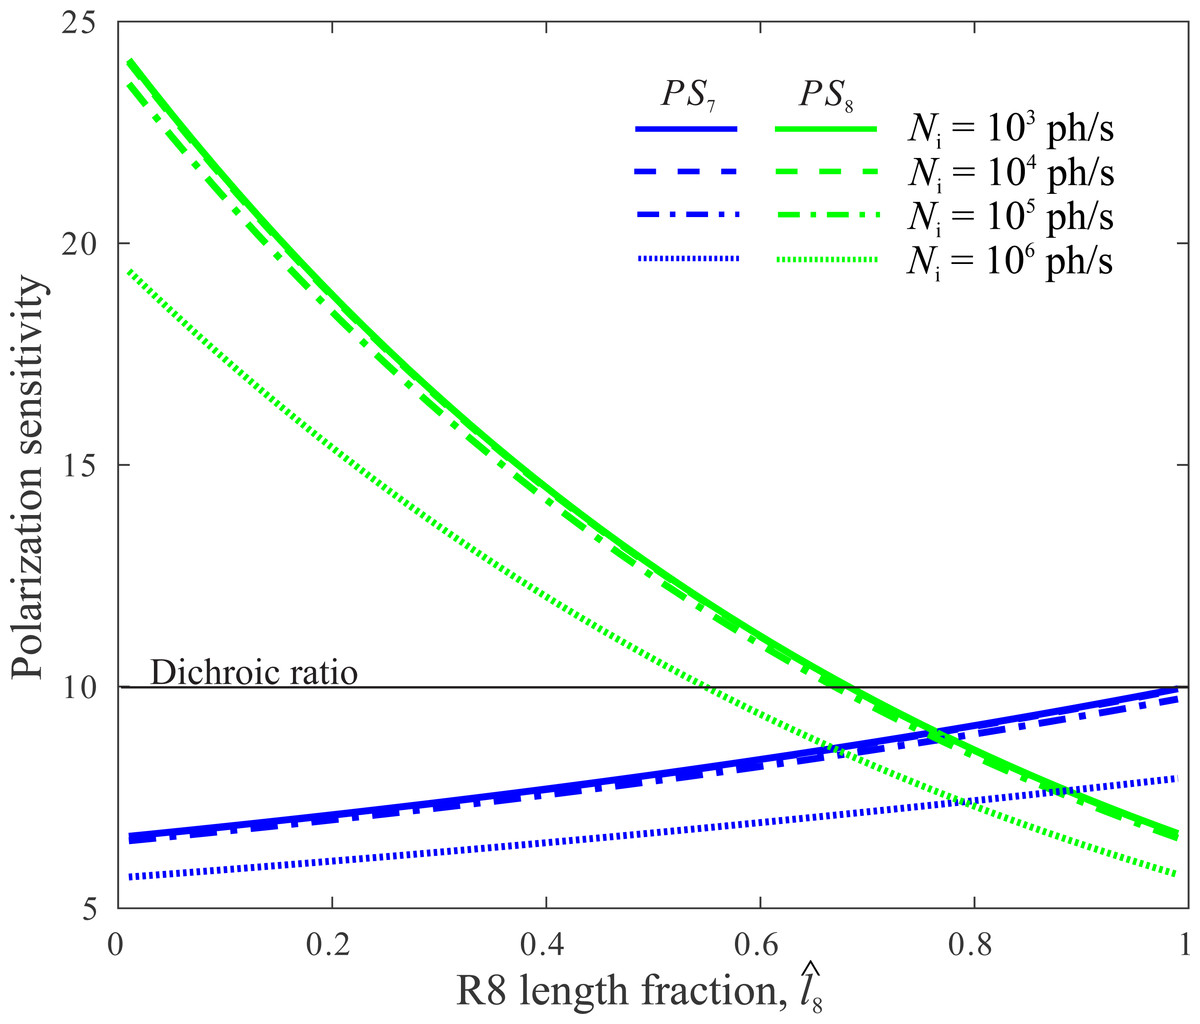 Optimizing The Use Of A Sensor Resource For Opponent Polarization Pin Diode Limiter Circuit Simulator On Pinterest Sensitivities R7 And R8 Ps7 Ps8 Depend Division Crp